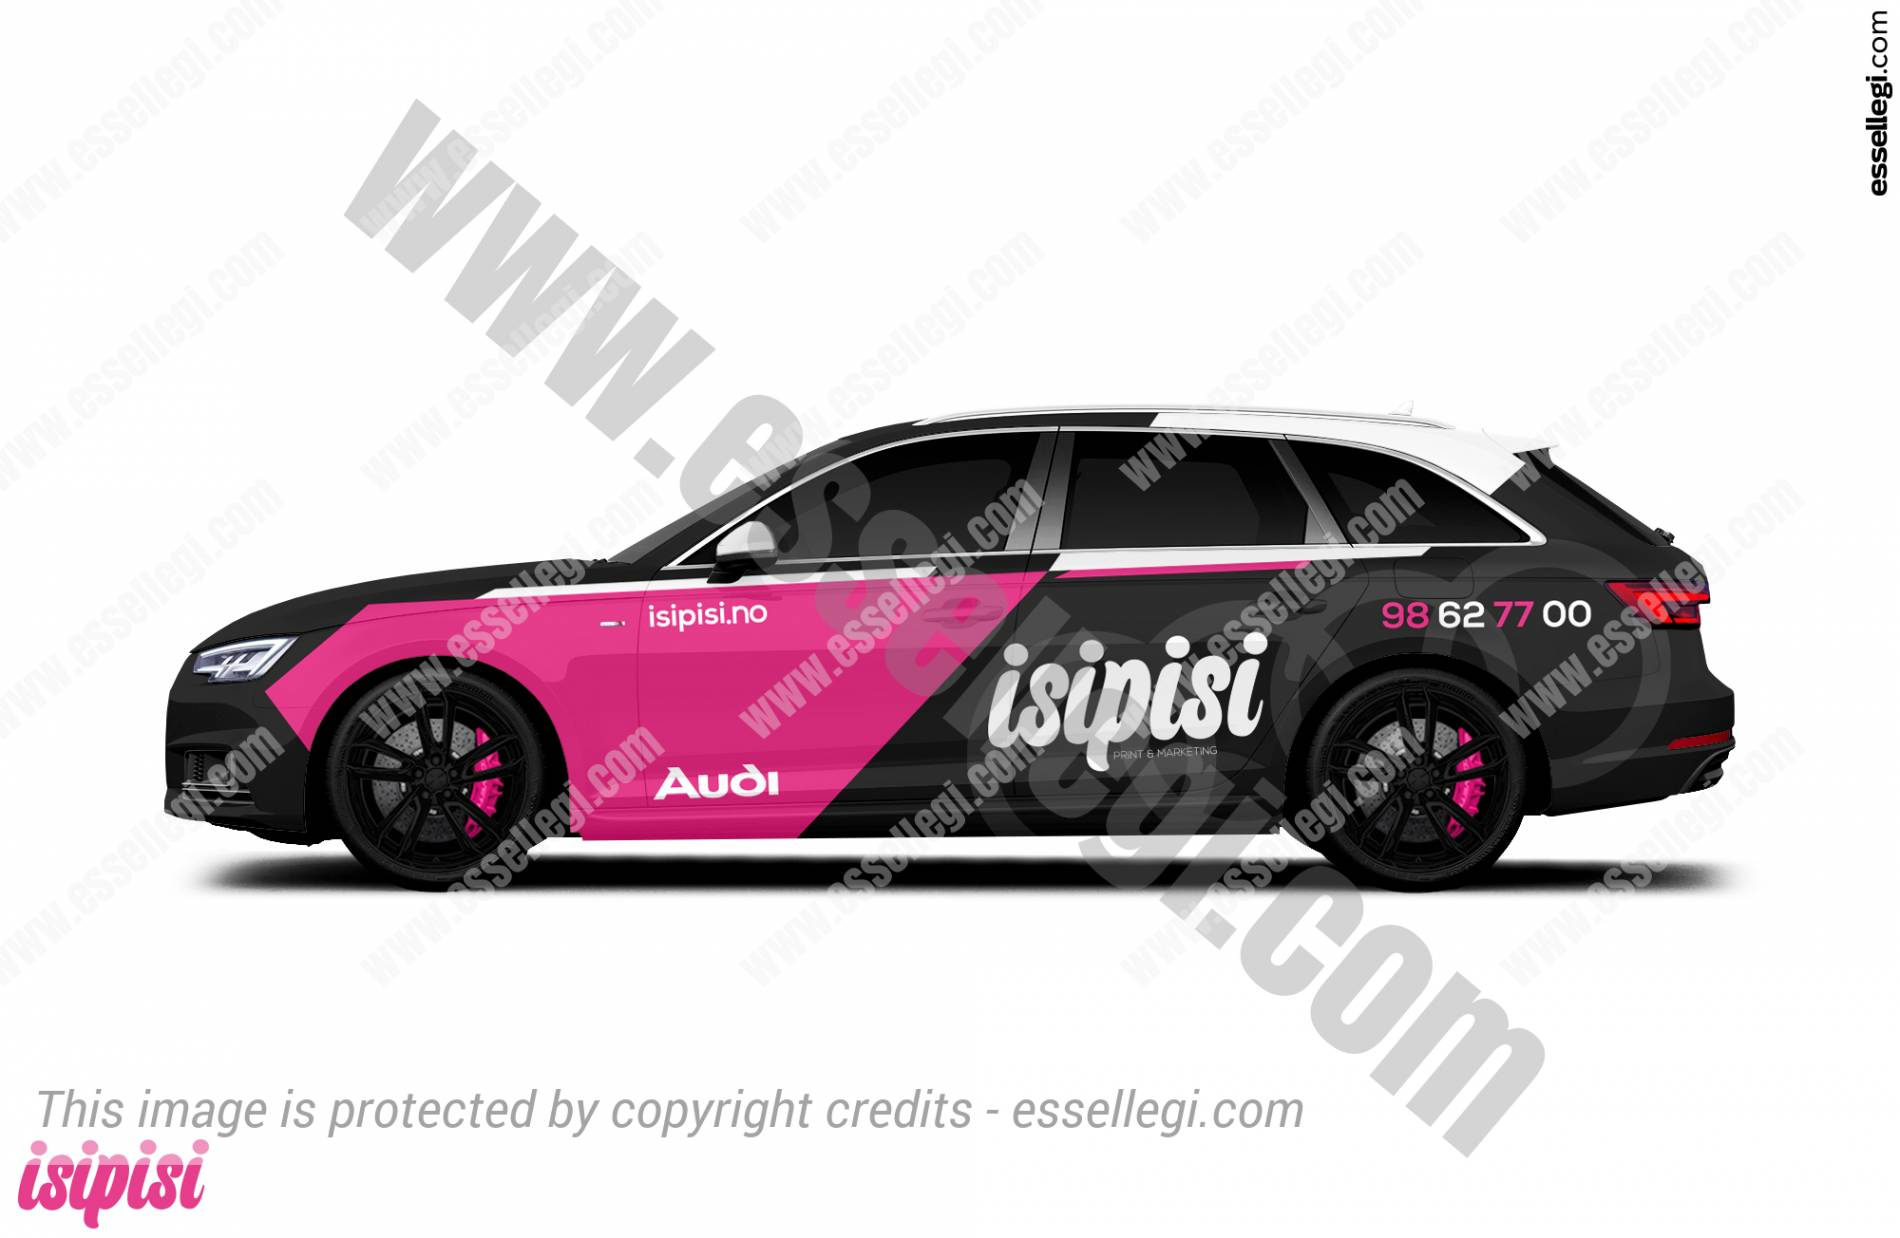 Audi A4 Wrap Design. Audi A4 Avant | Car Wrap Design by Essellegi. Car Signs, Car Signage, Car Signwriting, Car Wrap Designer, Car Graphic, Custom Vehicle Signage, Car Wrap Design by Essellegi.